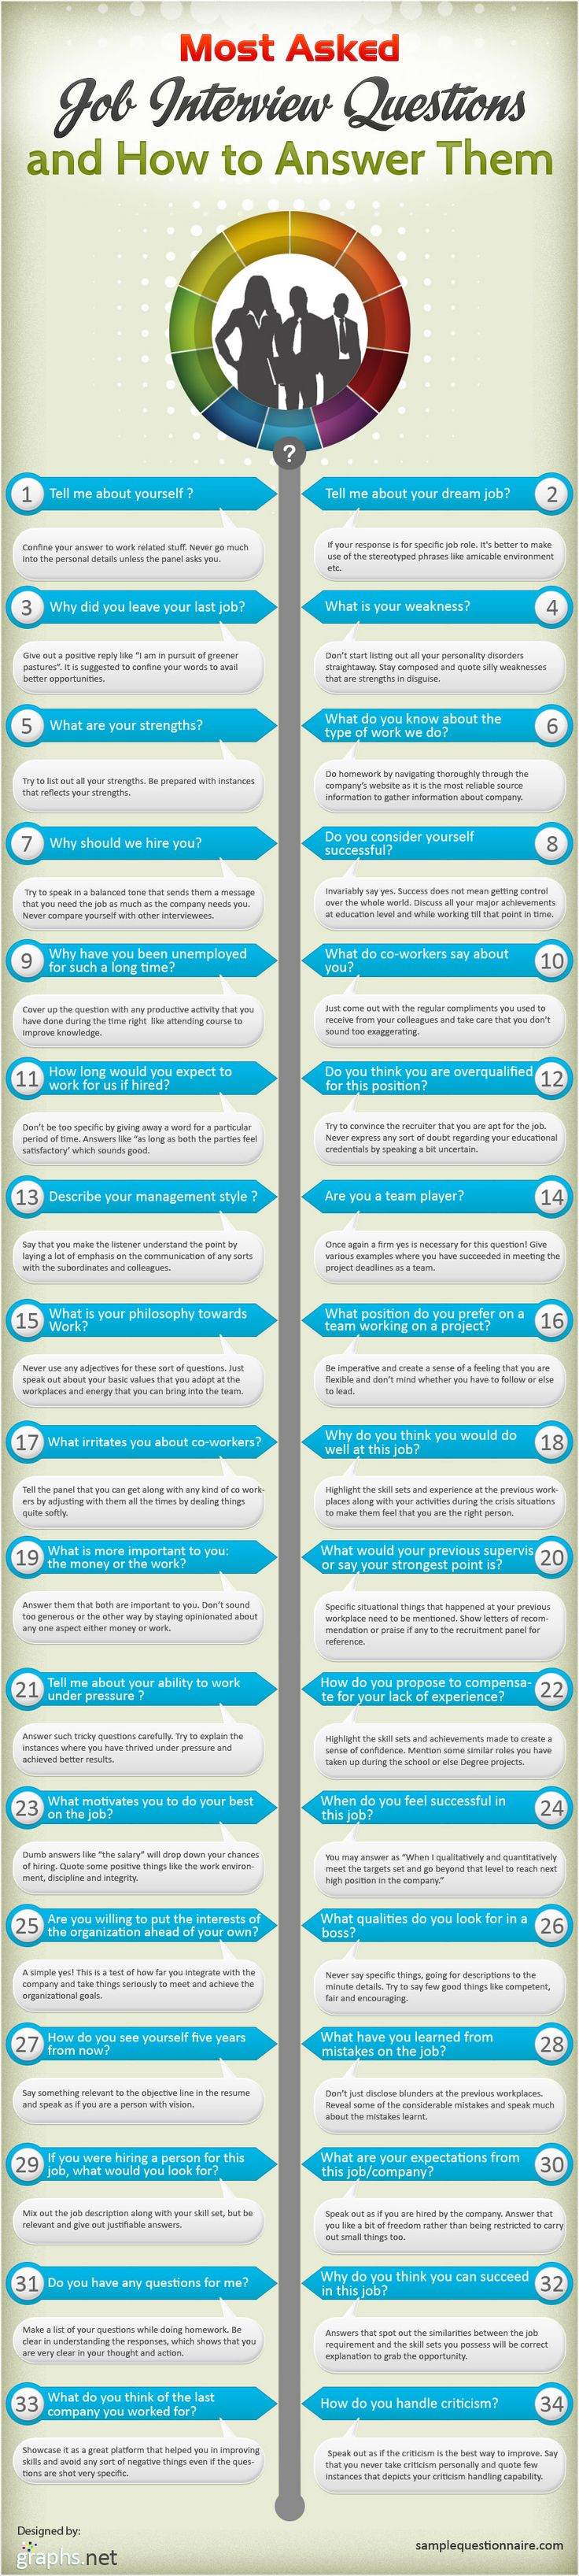 34 Most Asked Job Interview Questions & How To Answer Them